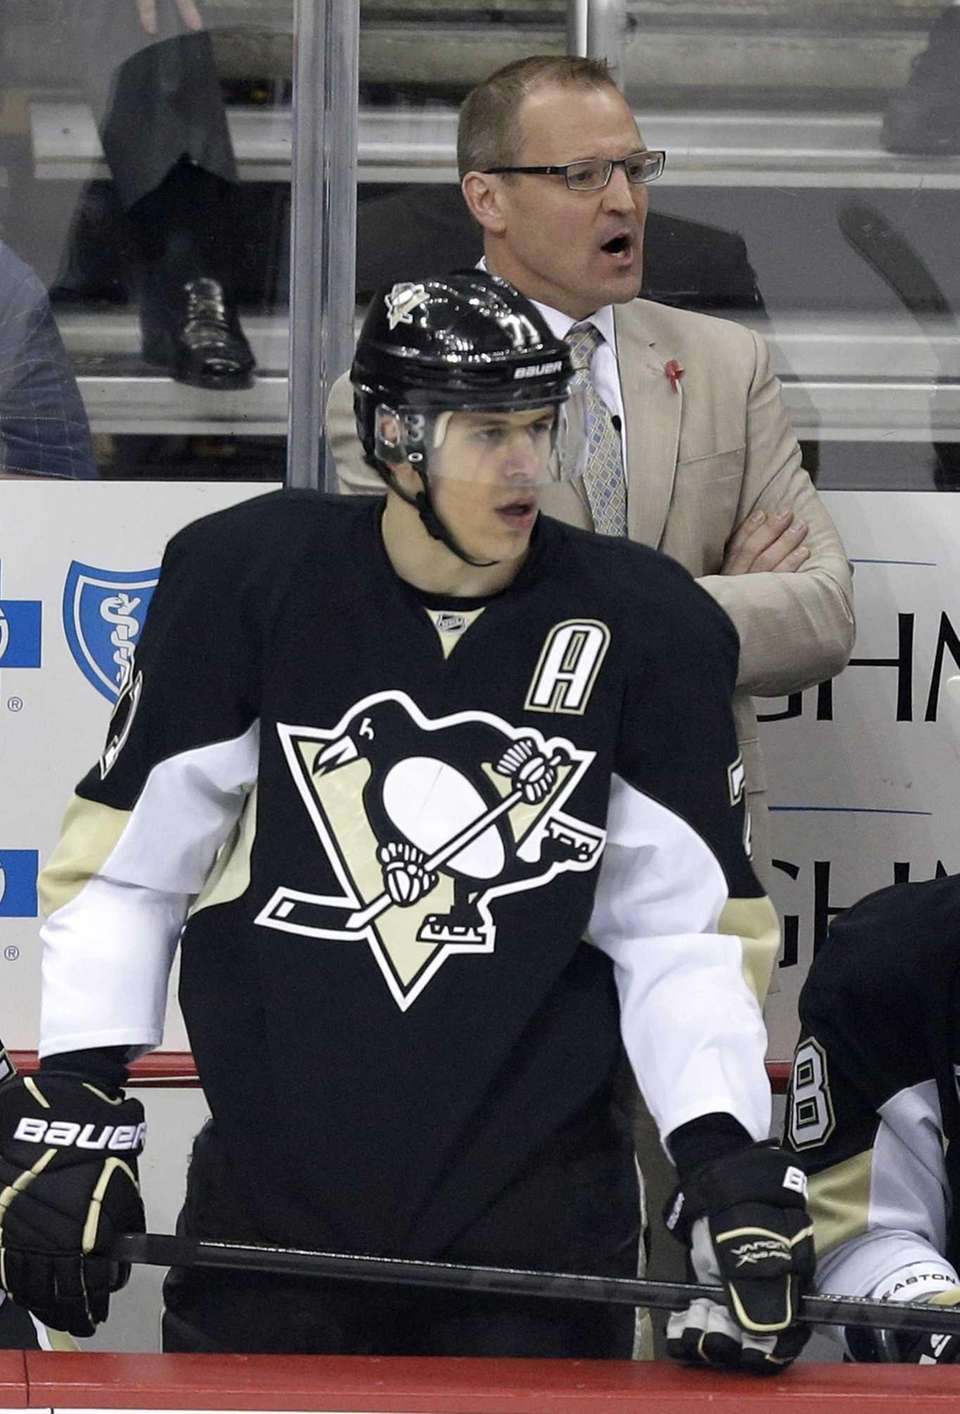 Pittsburgh Penguins coach Dan Bylsma stands behind Evgeni